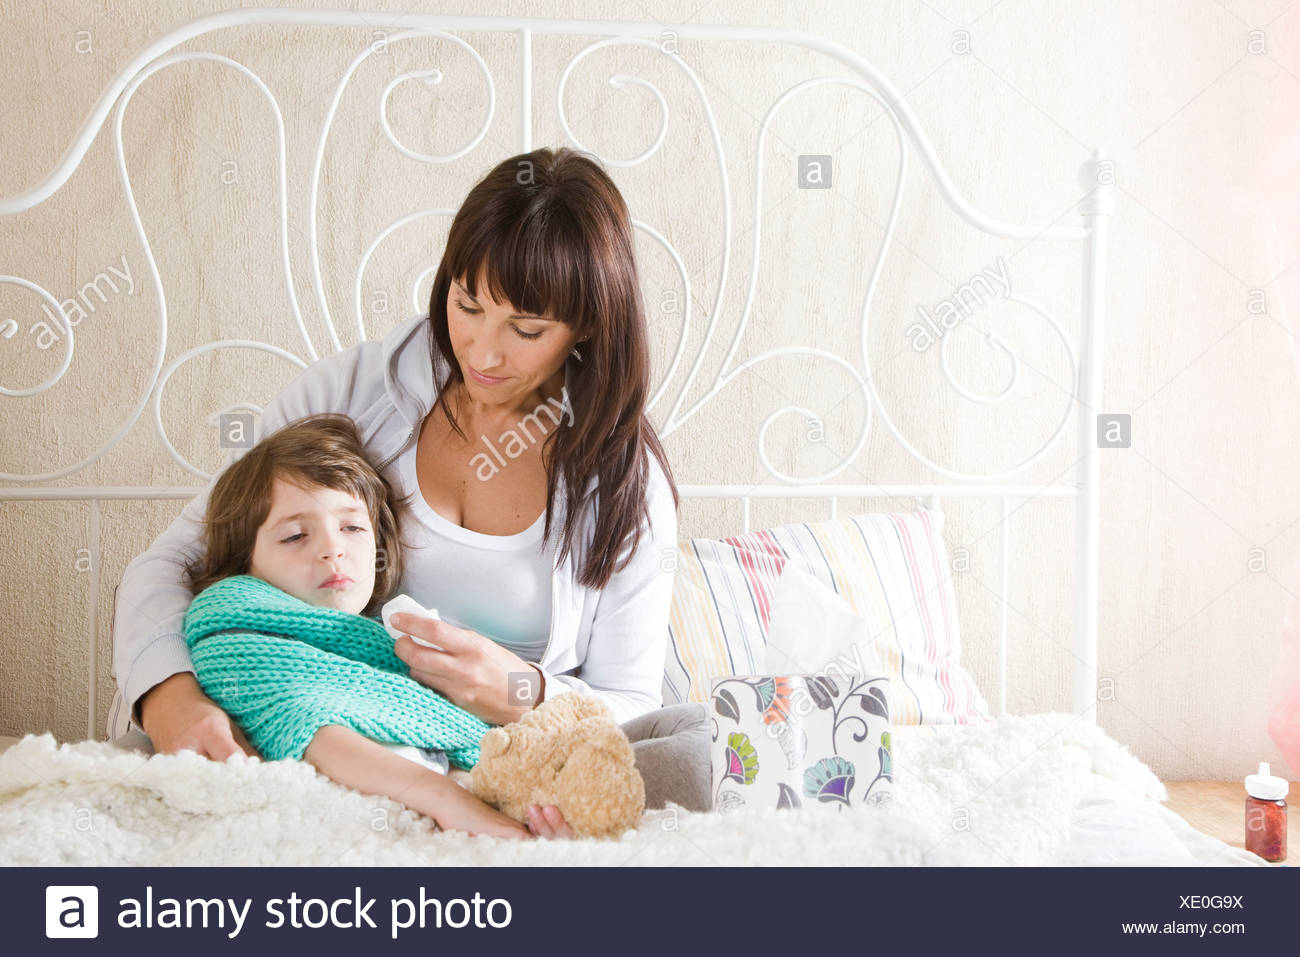 Mother taking care of sick daughter - Stock Image